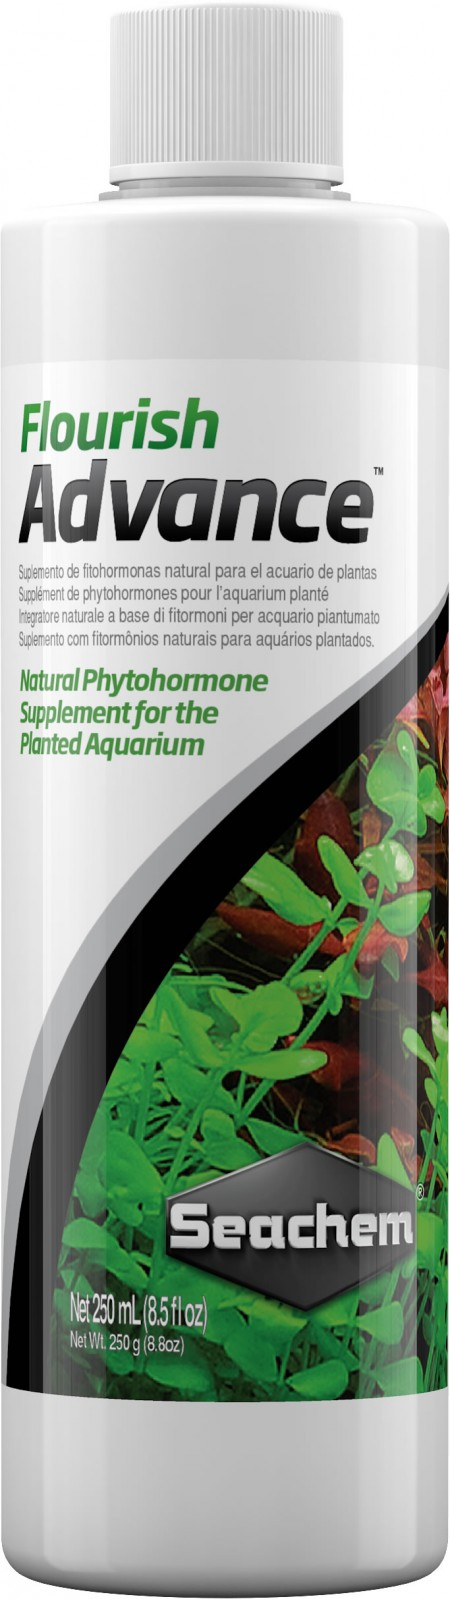 SEACHEM FLOURISH ADVANCE 250ML -  FERTILIZANTE AVANÇADO PARA AQUARIOS PLANTADOS